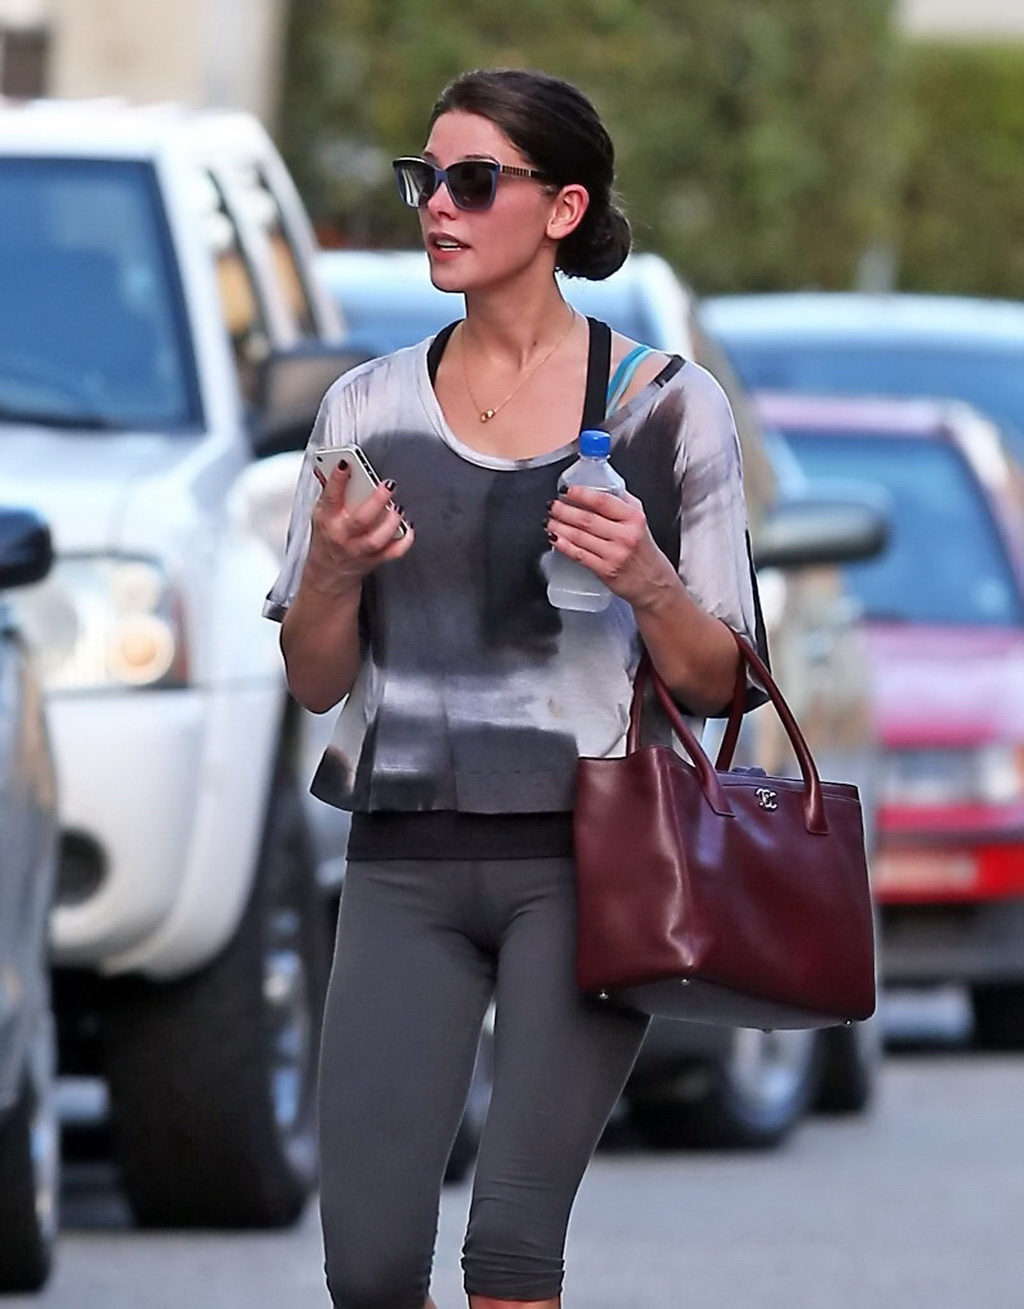 Ashley Greene shows sweaty cameltoe in tights leaving the ...